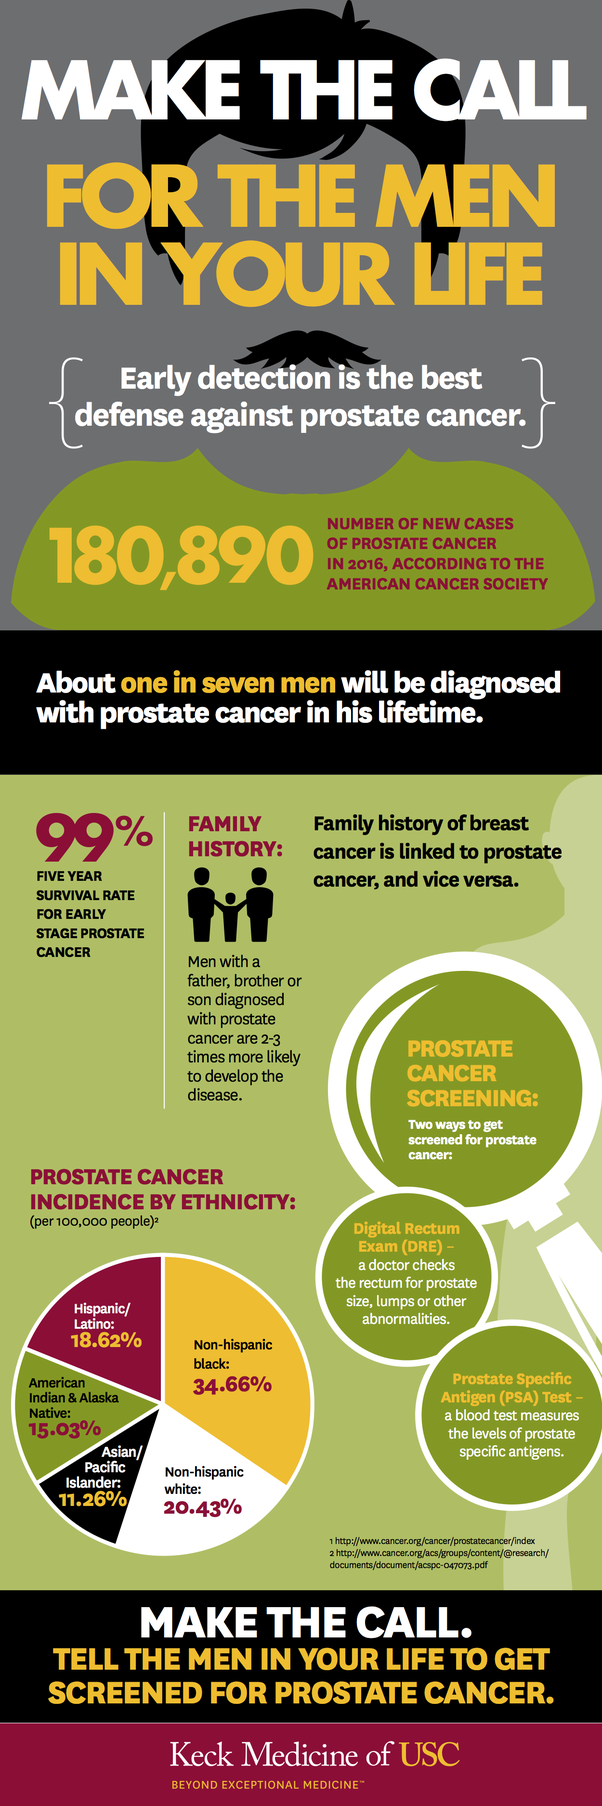 is-an-anal-prostate-test-accurate